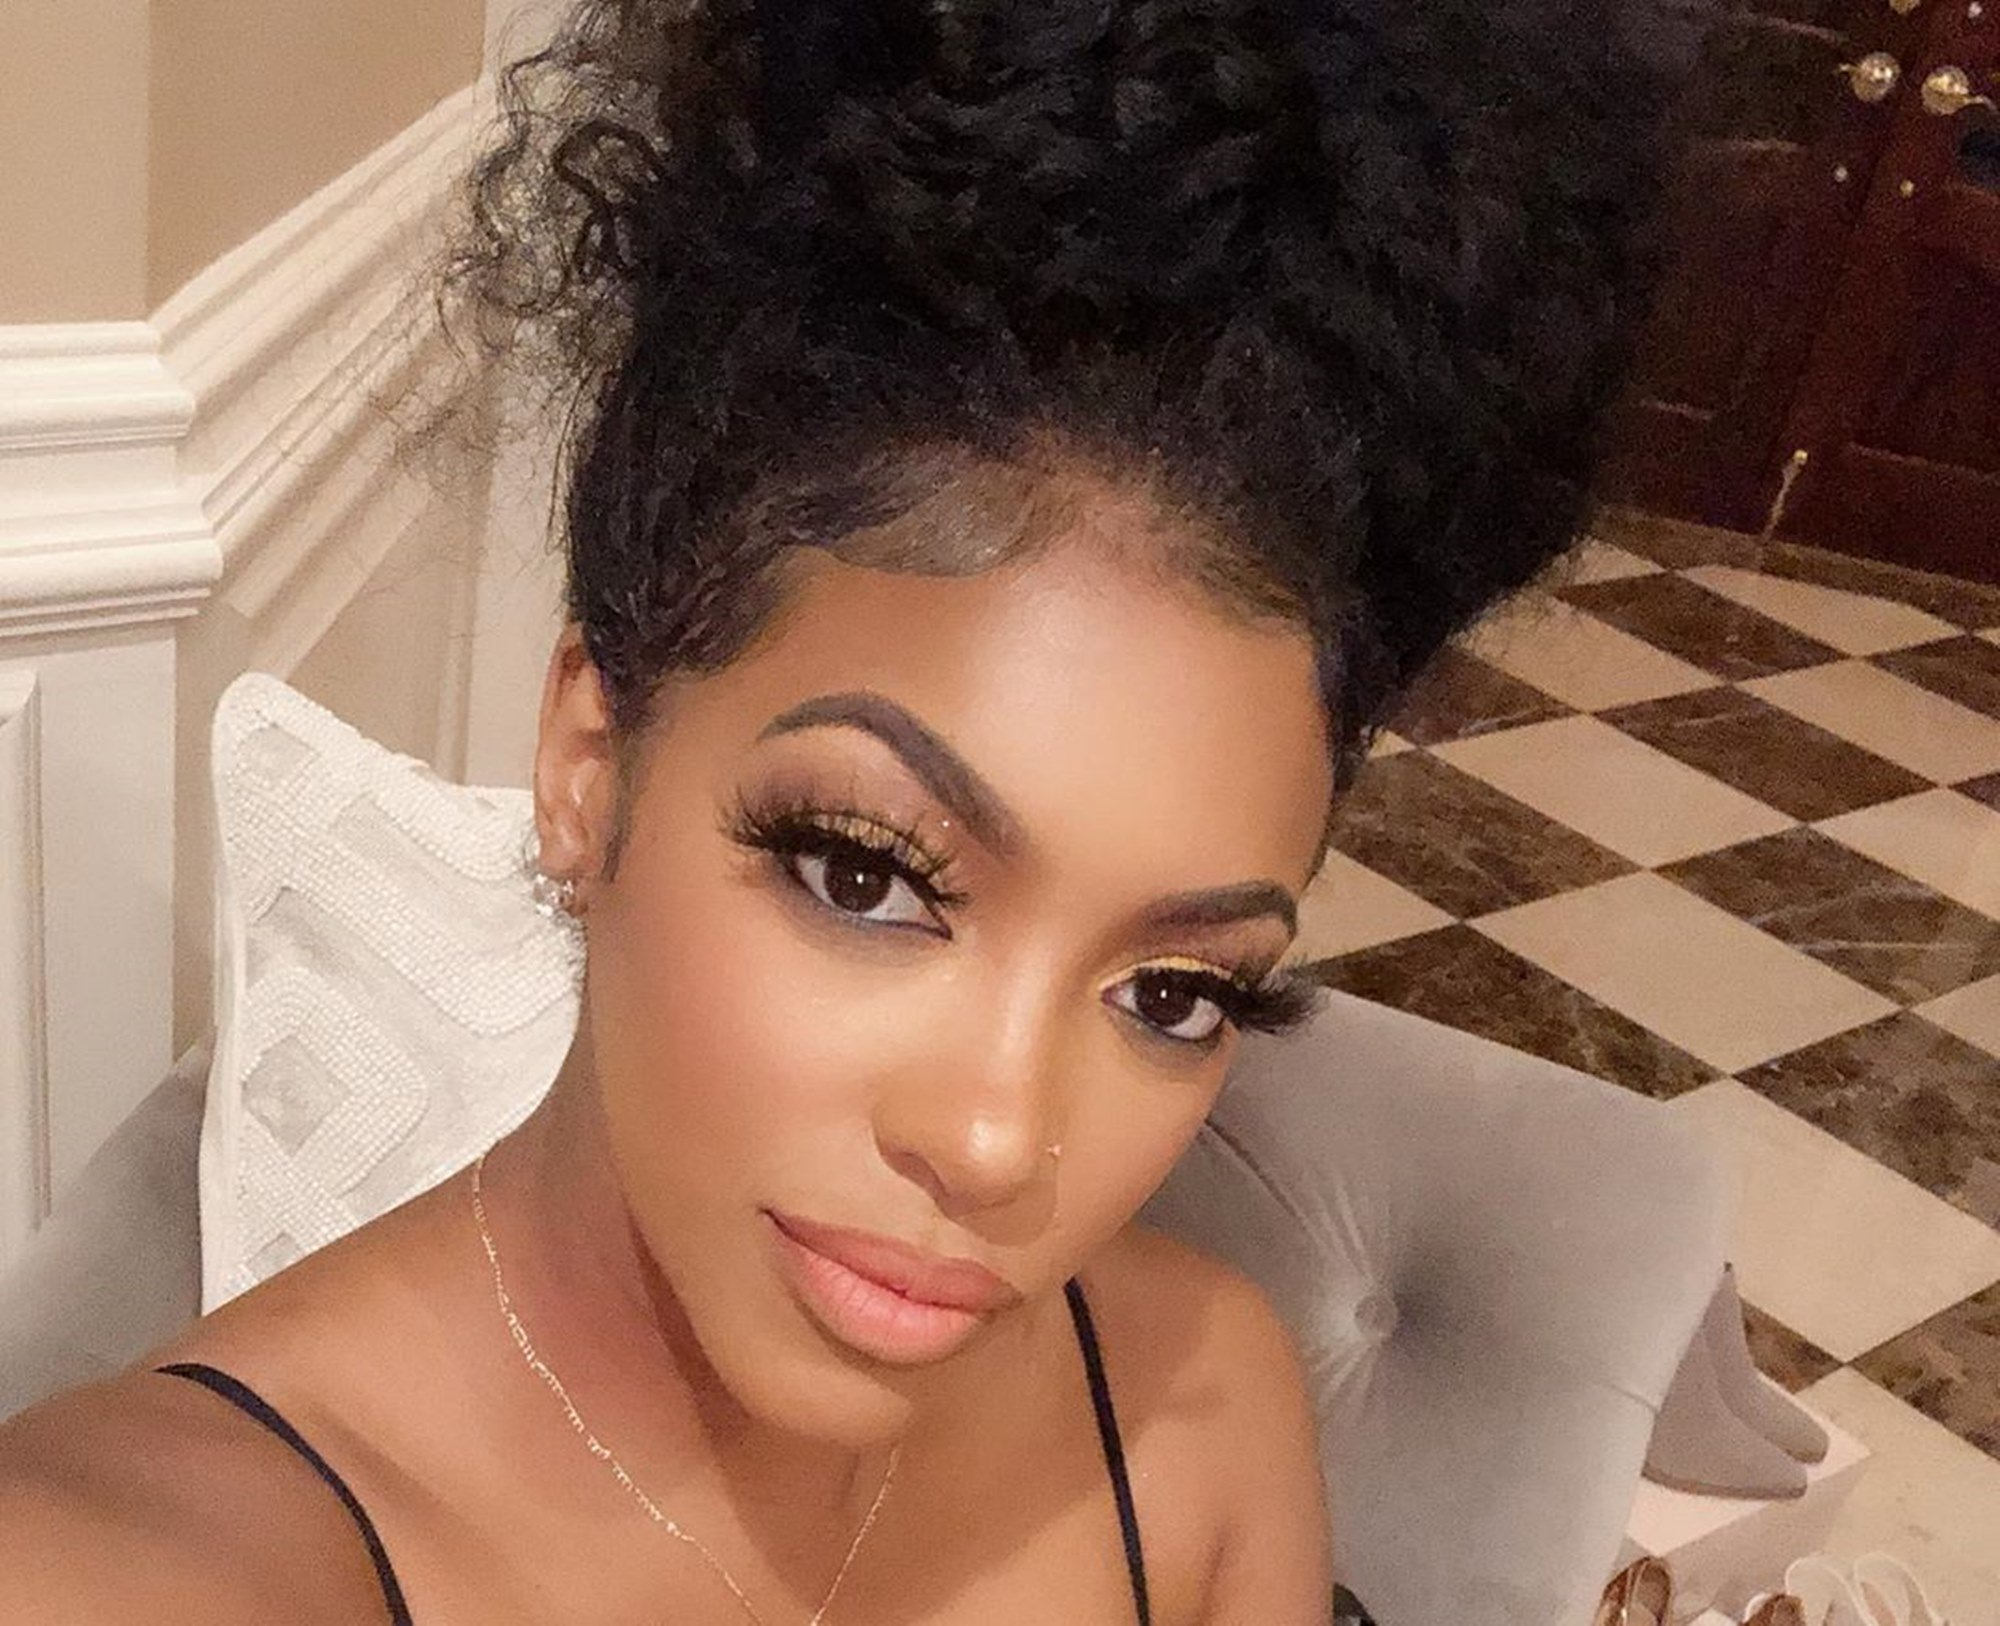 Porsha Williams' Family Photos Have Fans In Awe – People Are Confident She And Dennis McKinley Will Fix Things